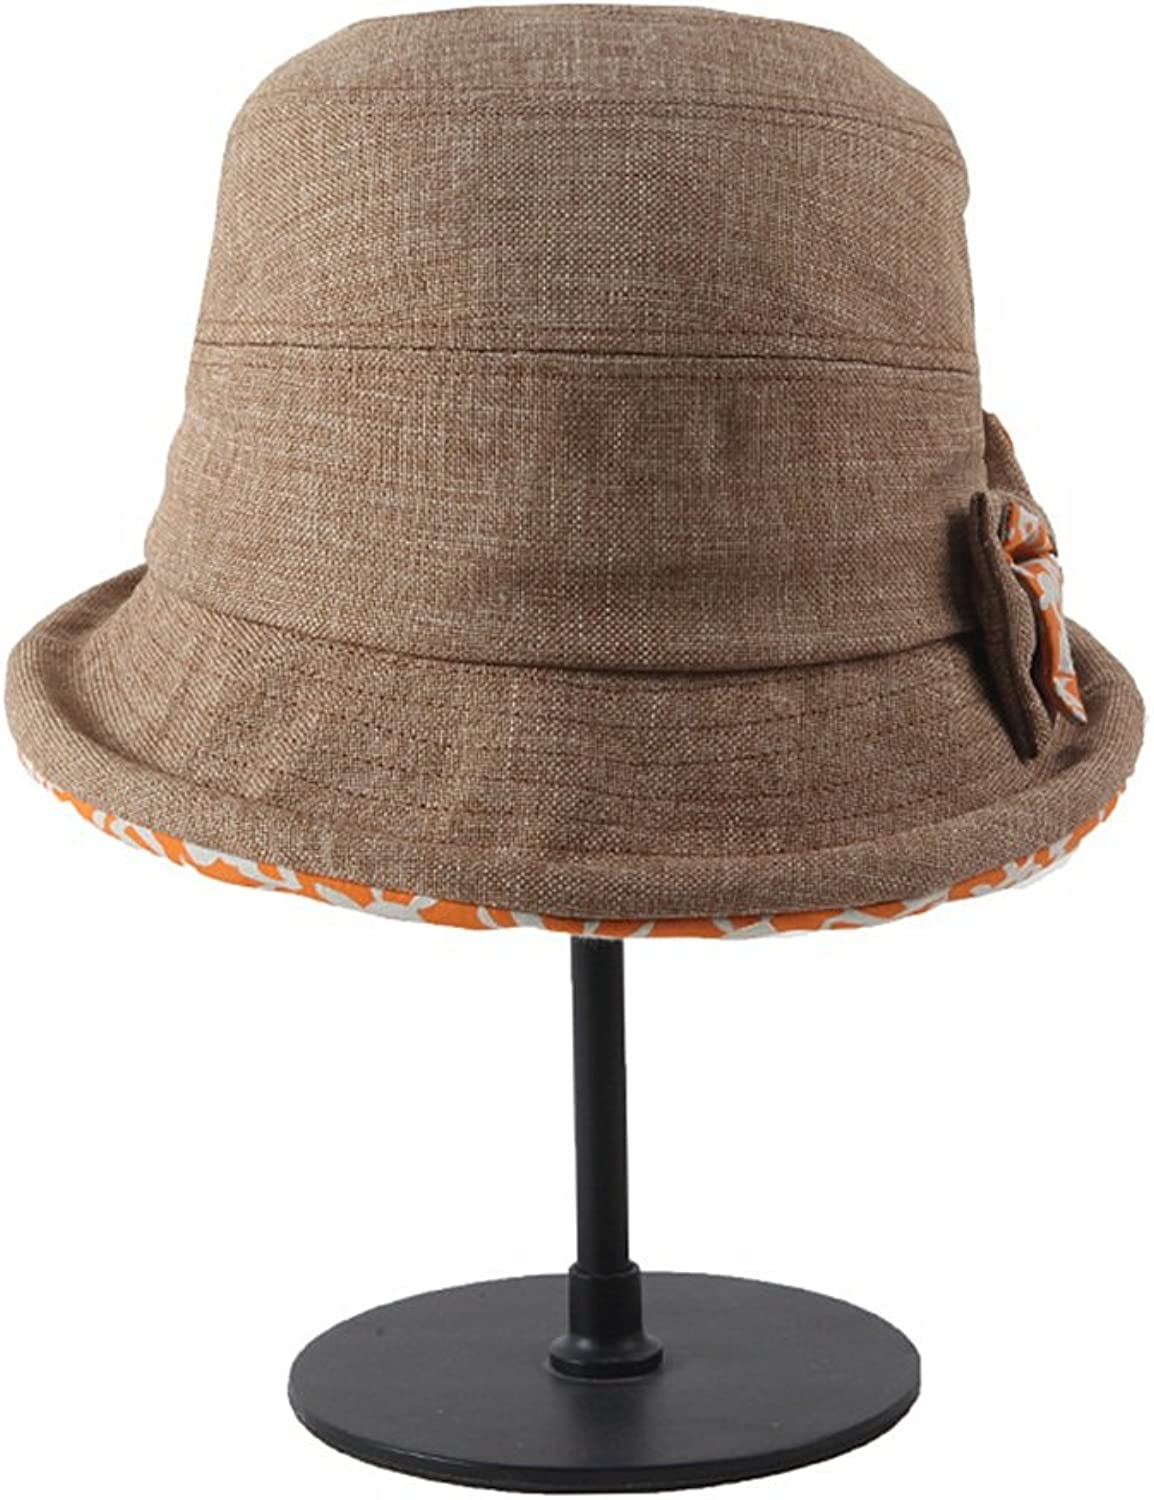 Summer Lady's Hat Cotton Folding Collapsible UV Predection Sun Visor